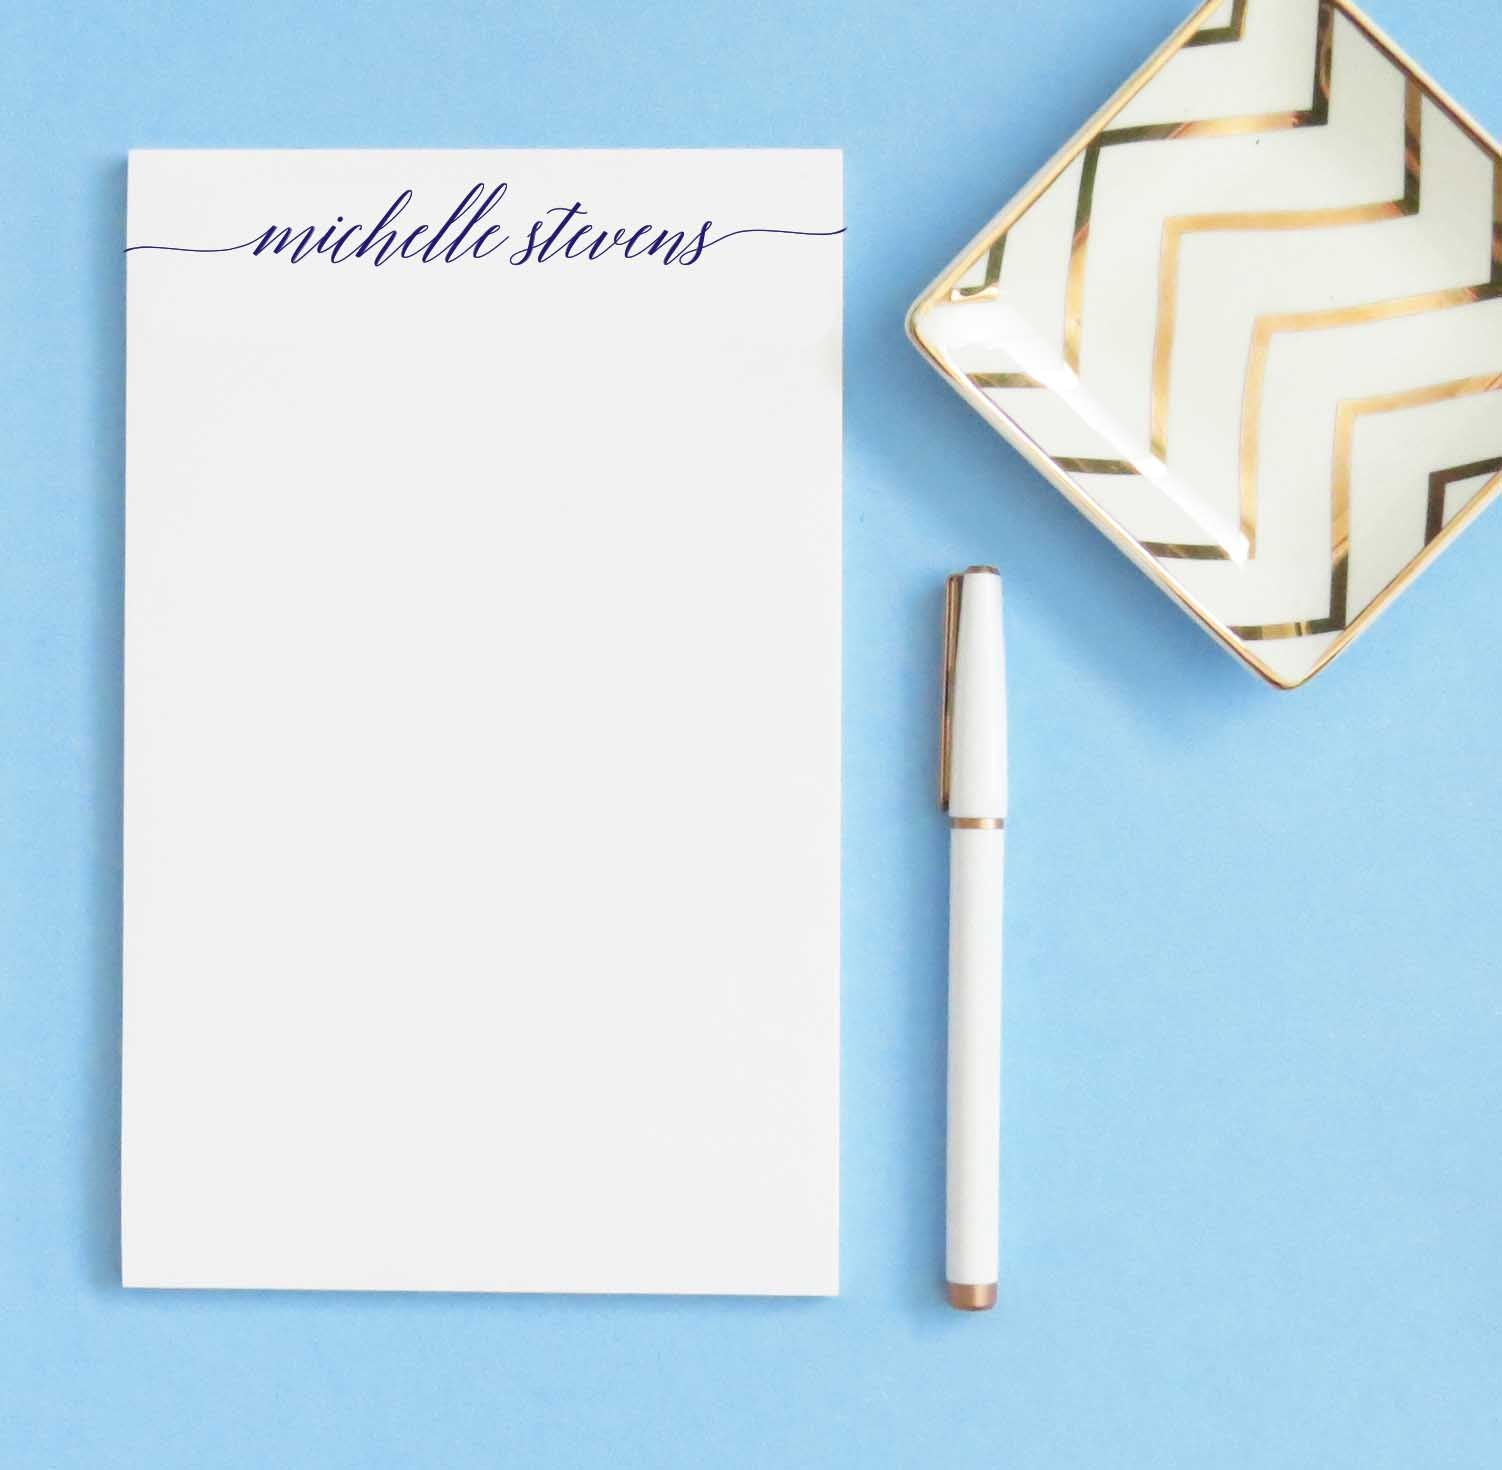 NP163 classic script personalized stationary paper set writing stationery paper